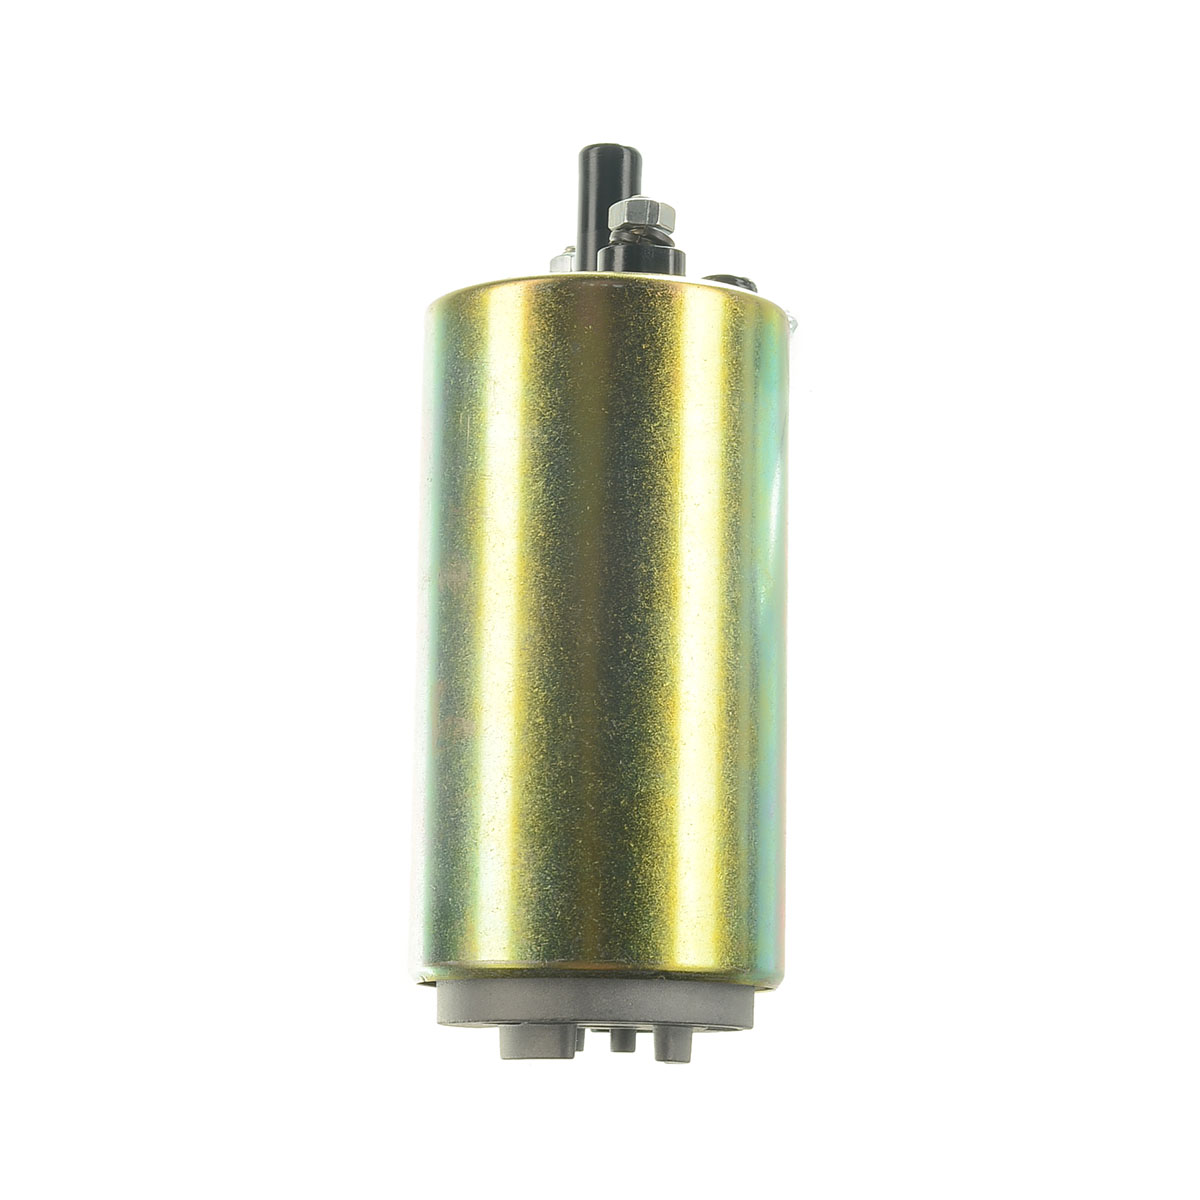 small resolution of electric fuel pump for toyota camry sv21 i4 2 0l 1987 1988 1989 1990 1991 1992 1993 3s fe sedan wagon in fuel pumps from automobiles motorcycles on